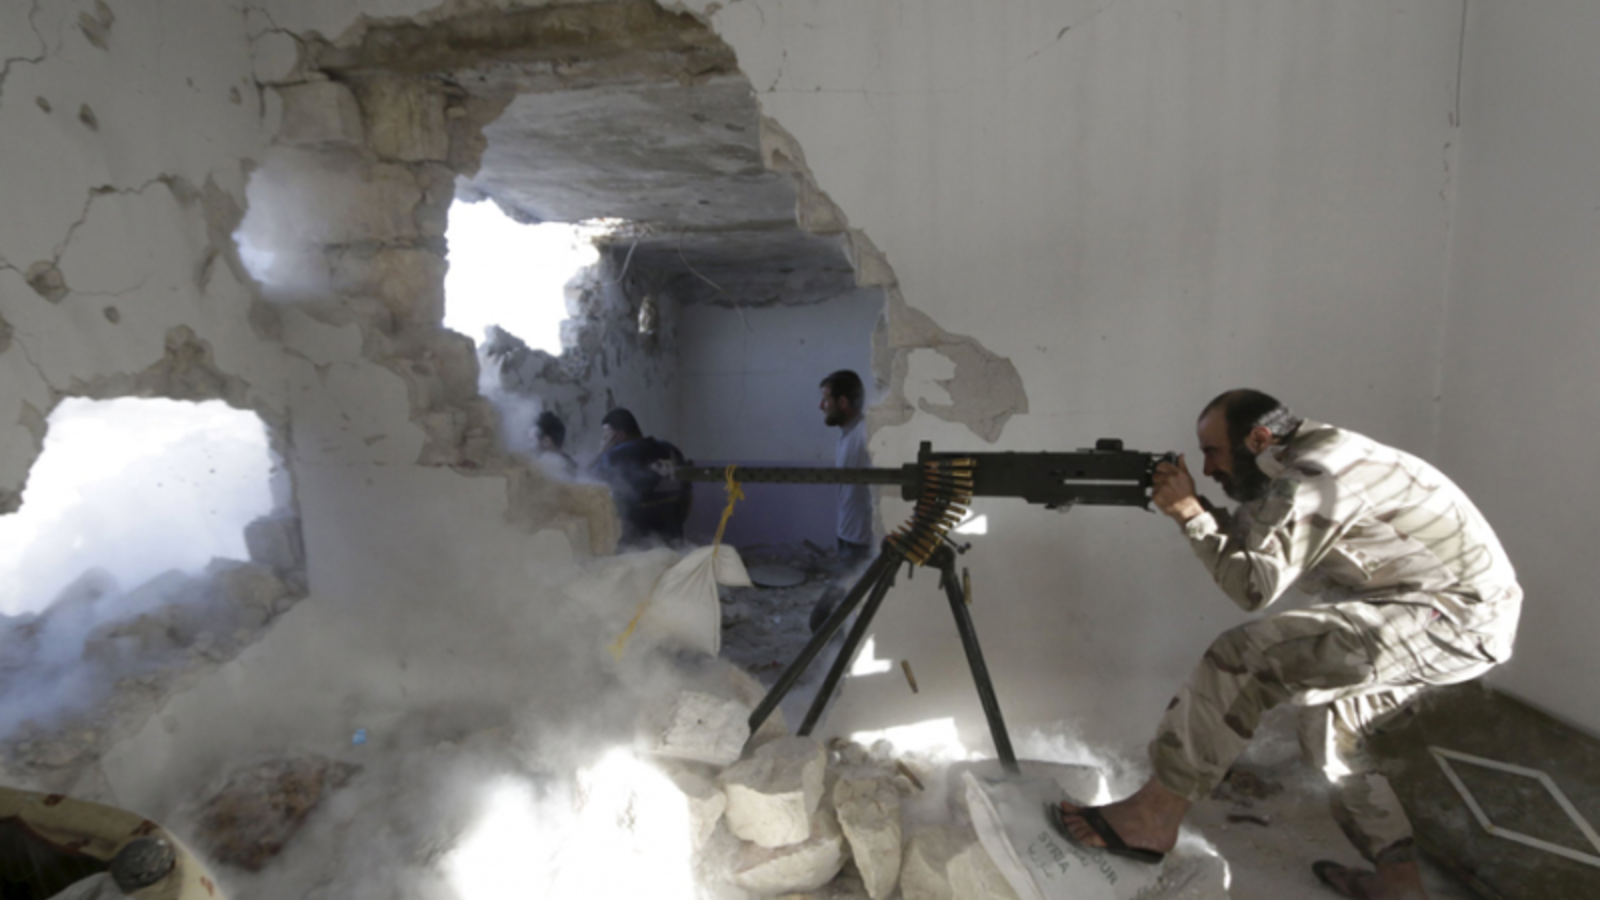 A Free Syrian Army fighter fires a weapon inside a damaged building during clashes with forces from the Syrian regime. (AFP/File)